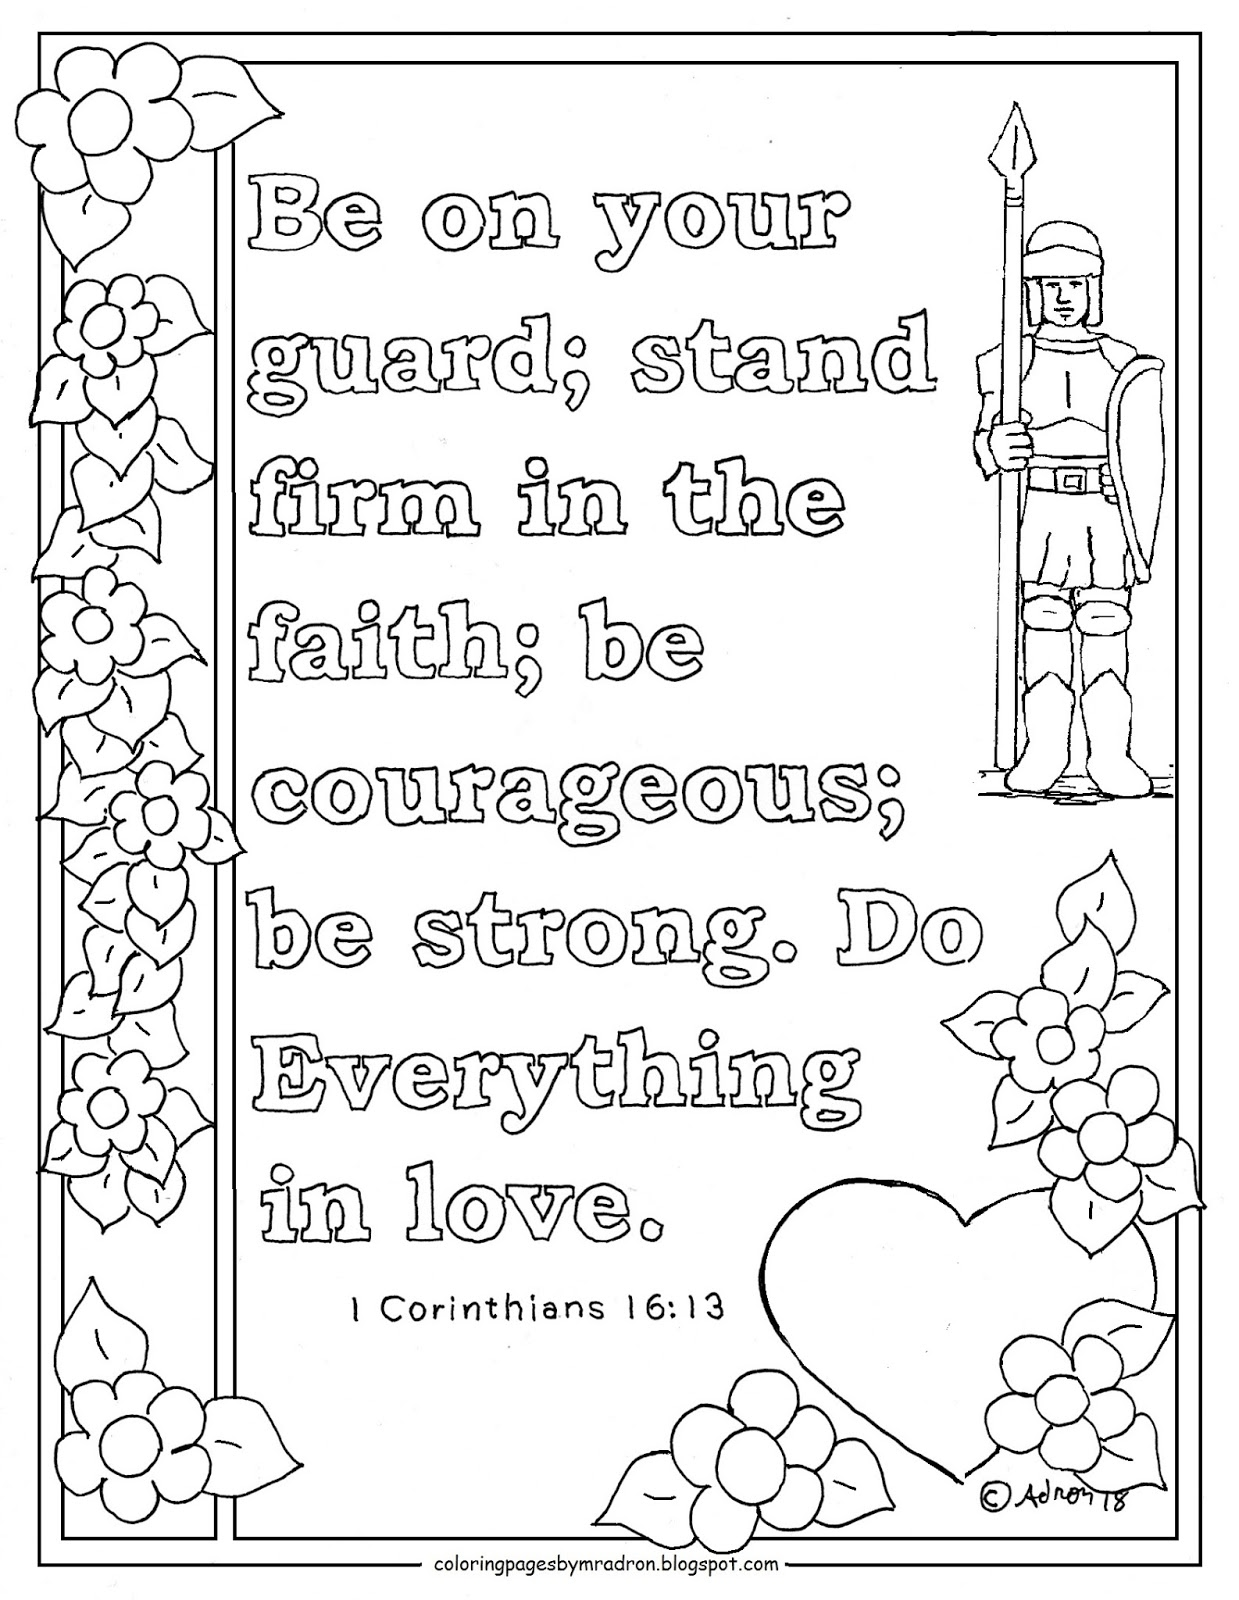 It is an image of Dynamite 1 Corinthians 13 Coloring Page